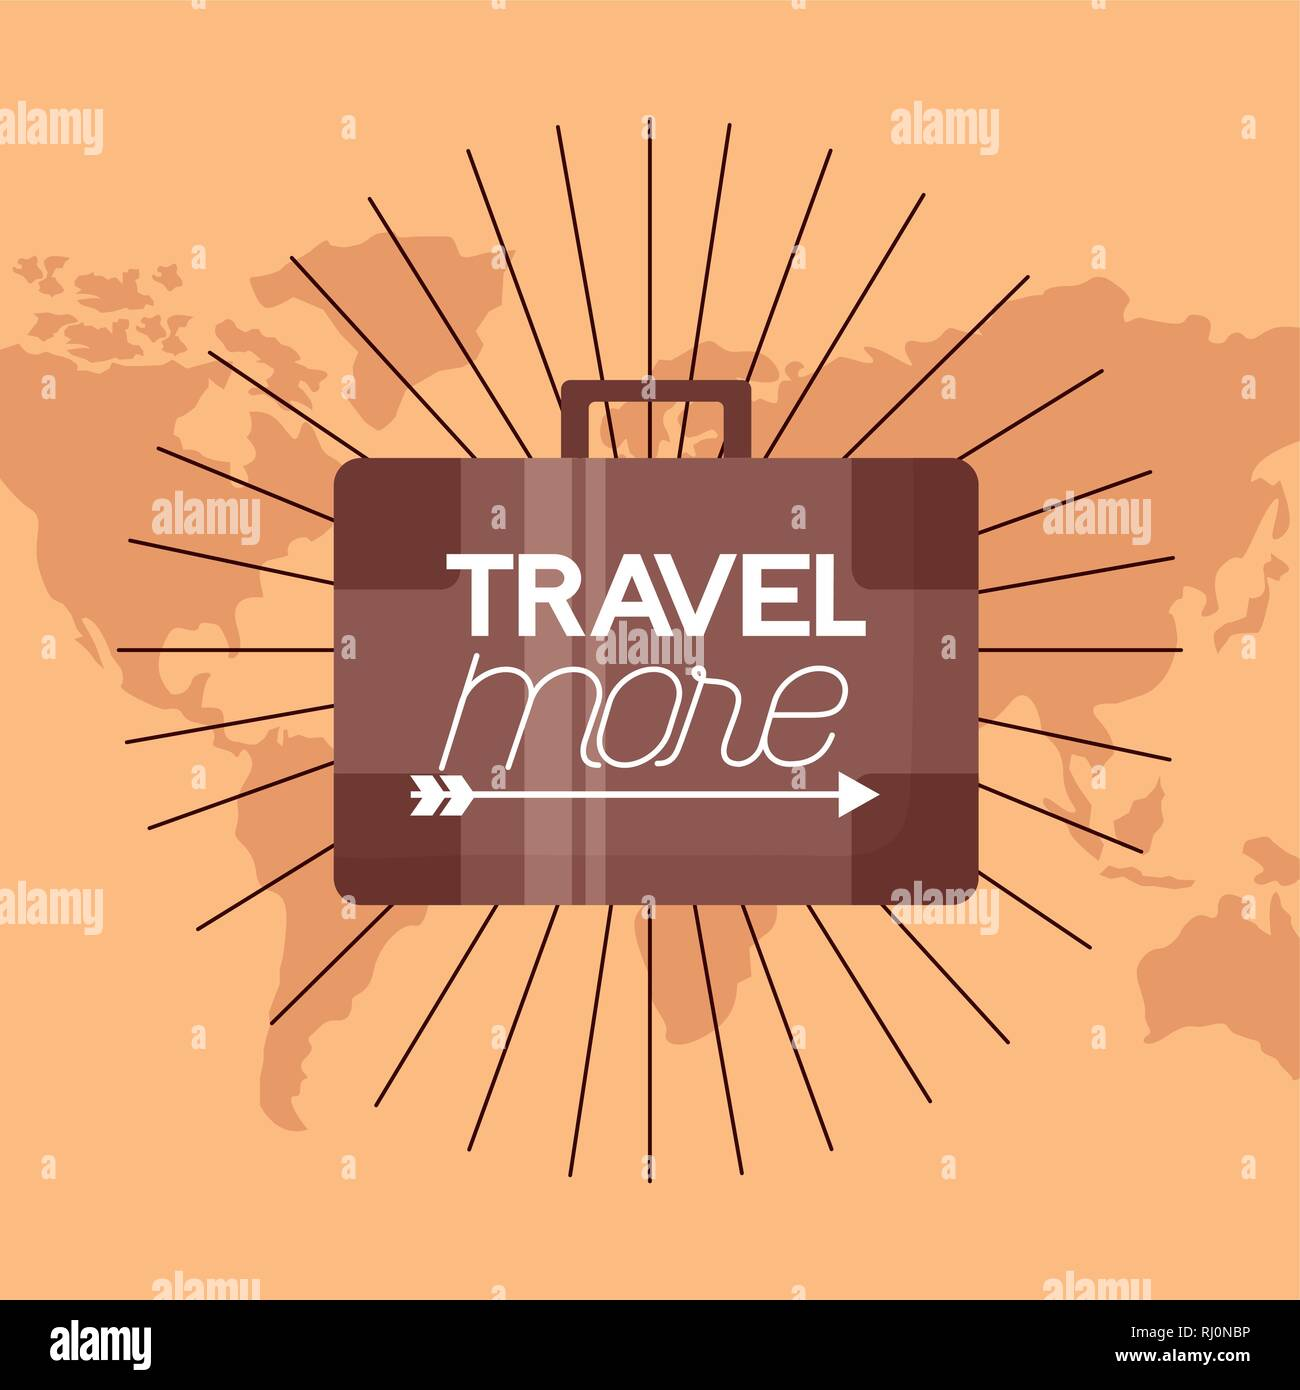 travel more background - Stock Image